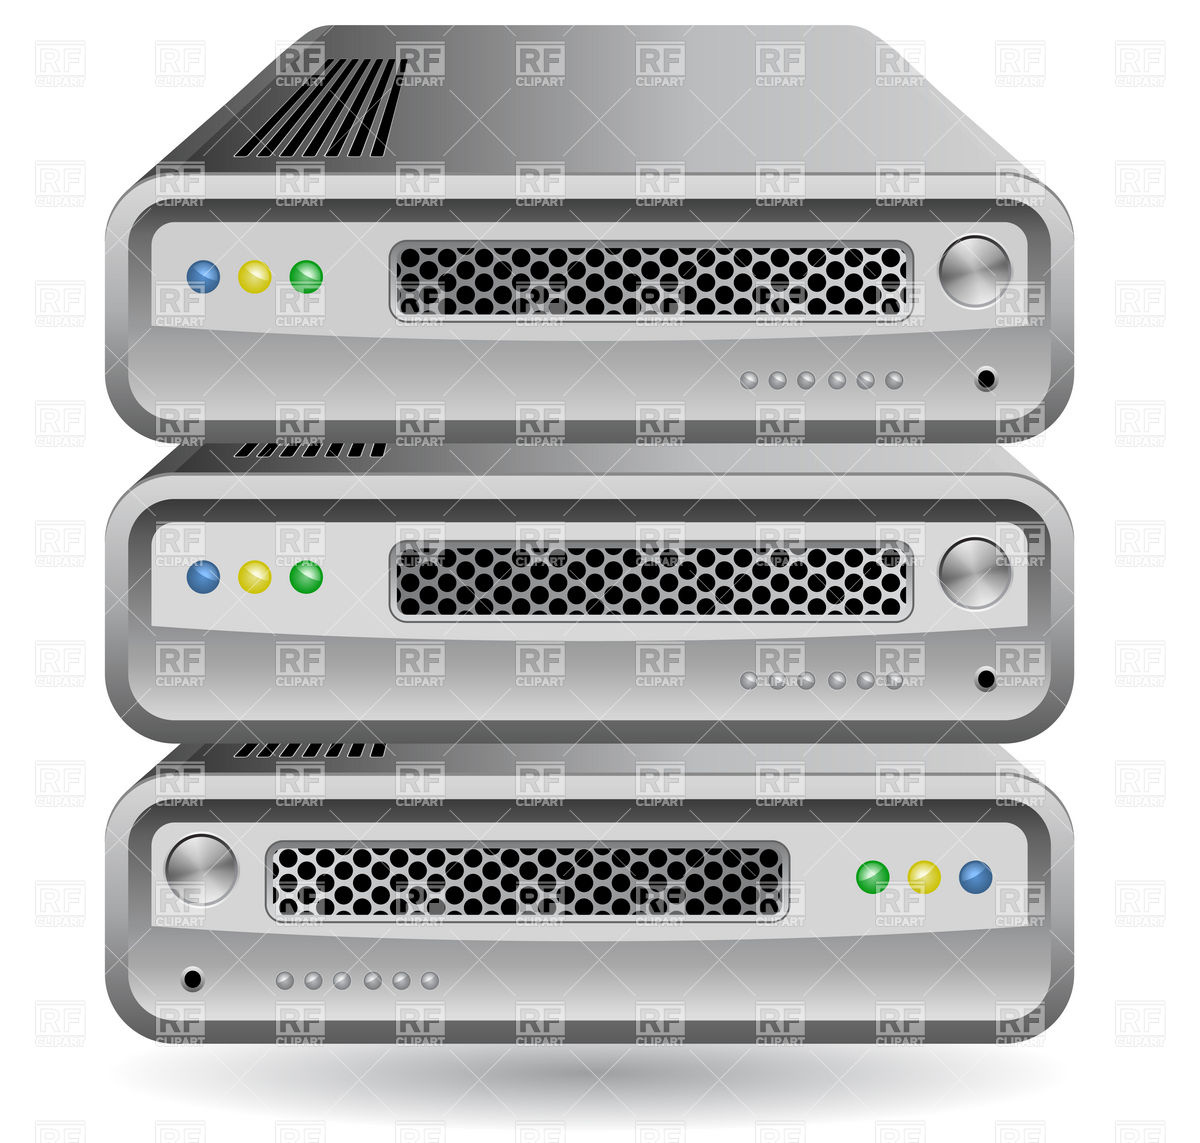 Network Router, Switch or Server Vector Image #5904.